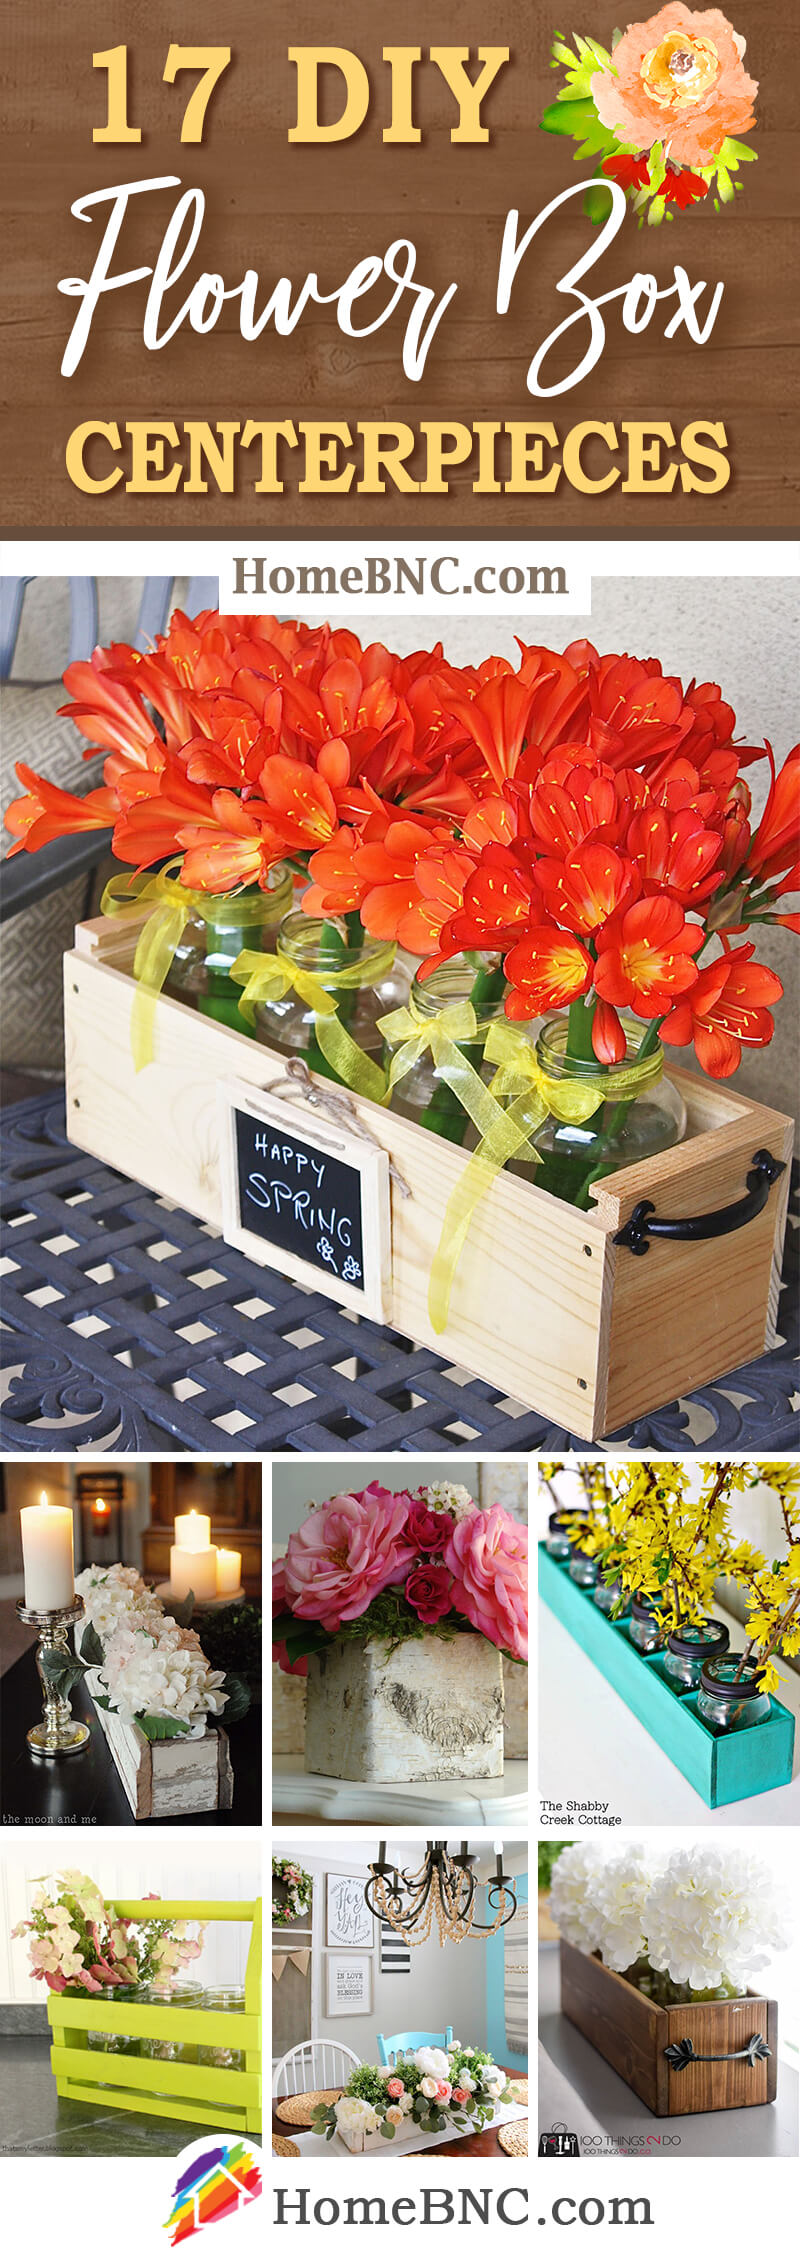 DIY Flowerbox Centerpiece Ideas